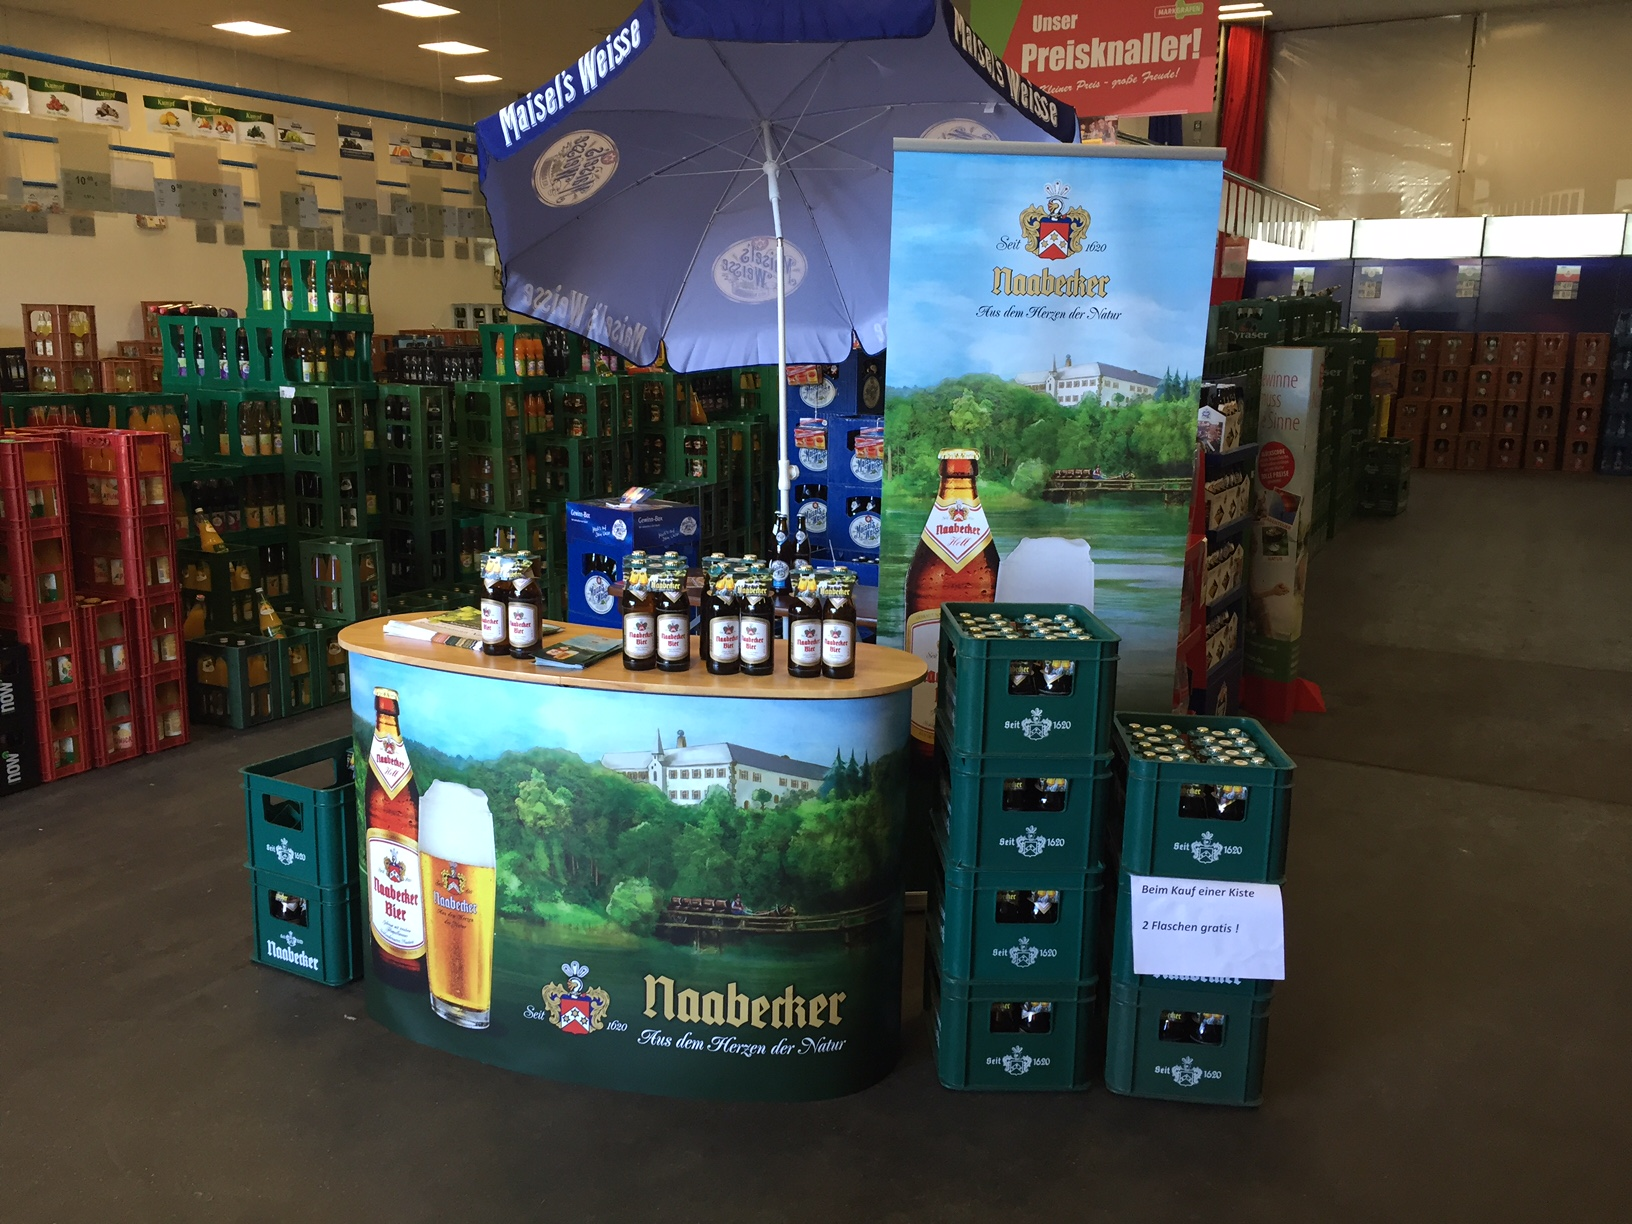 Naabecker hell Promotion Tour – Medienwuerfel